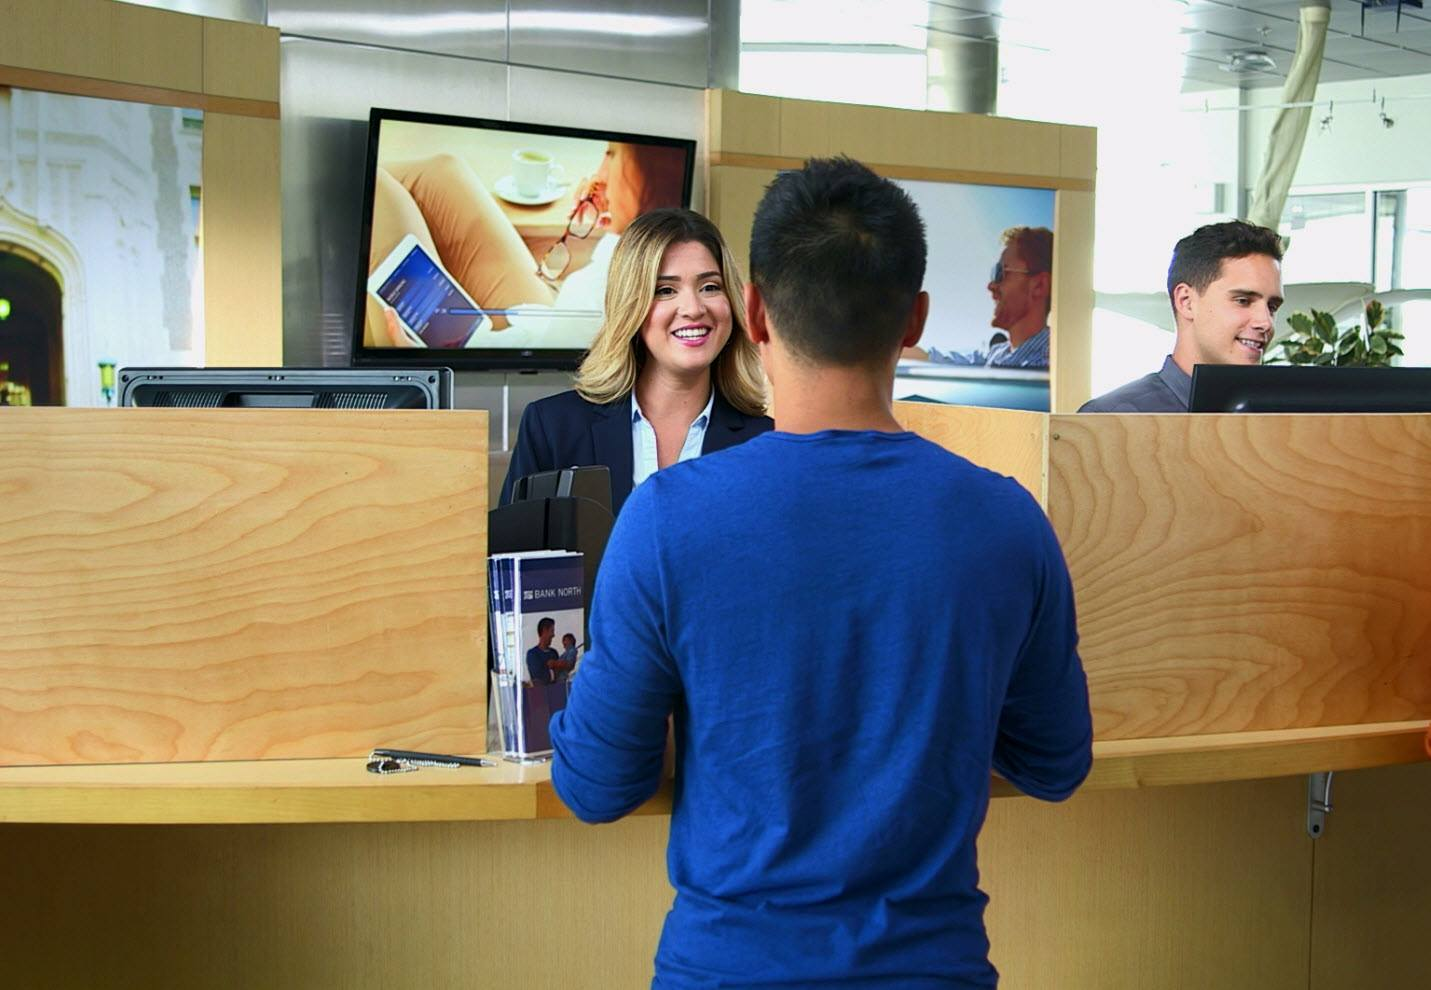 digital signage for financial services